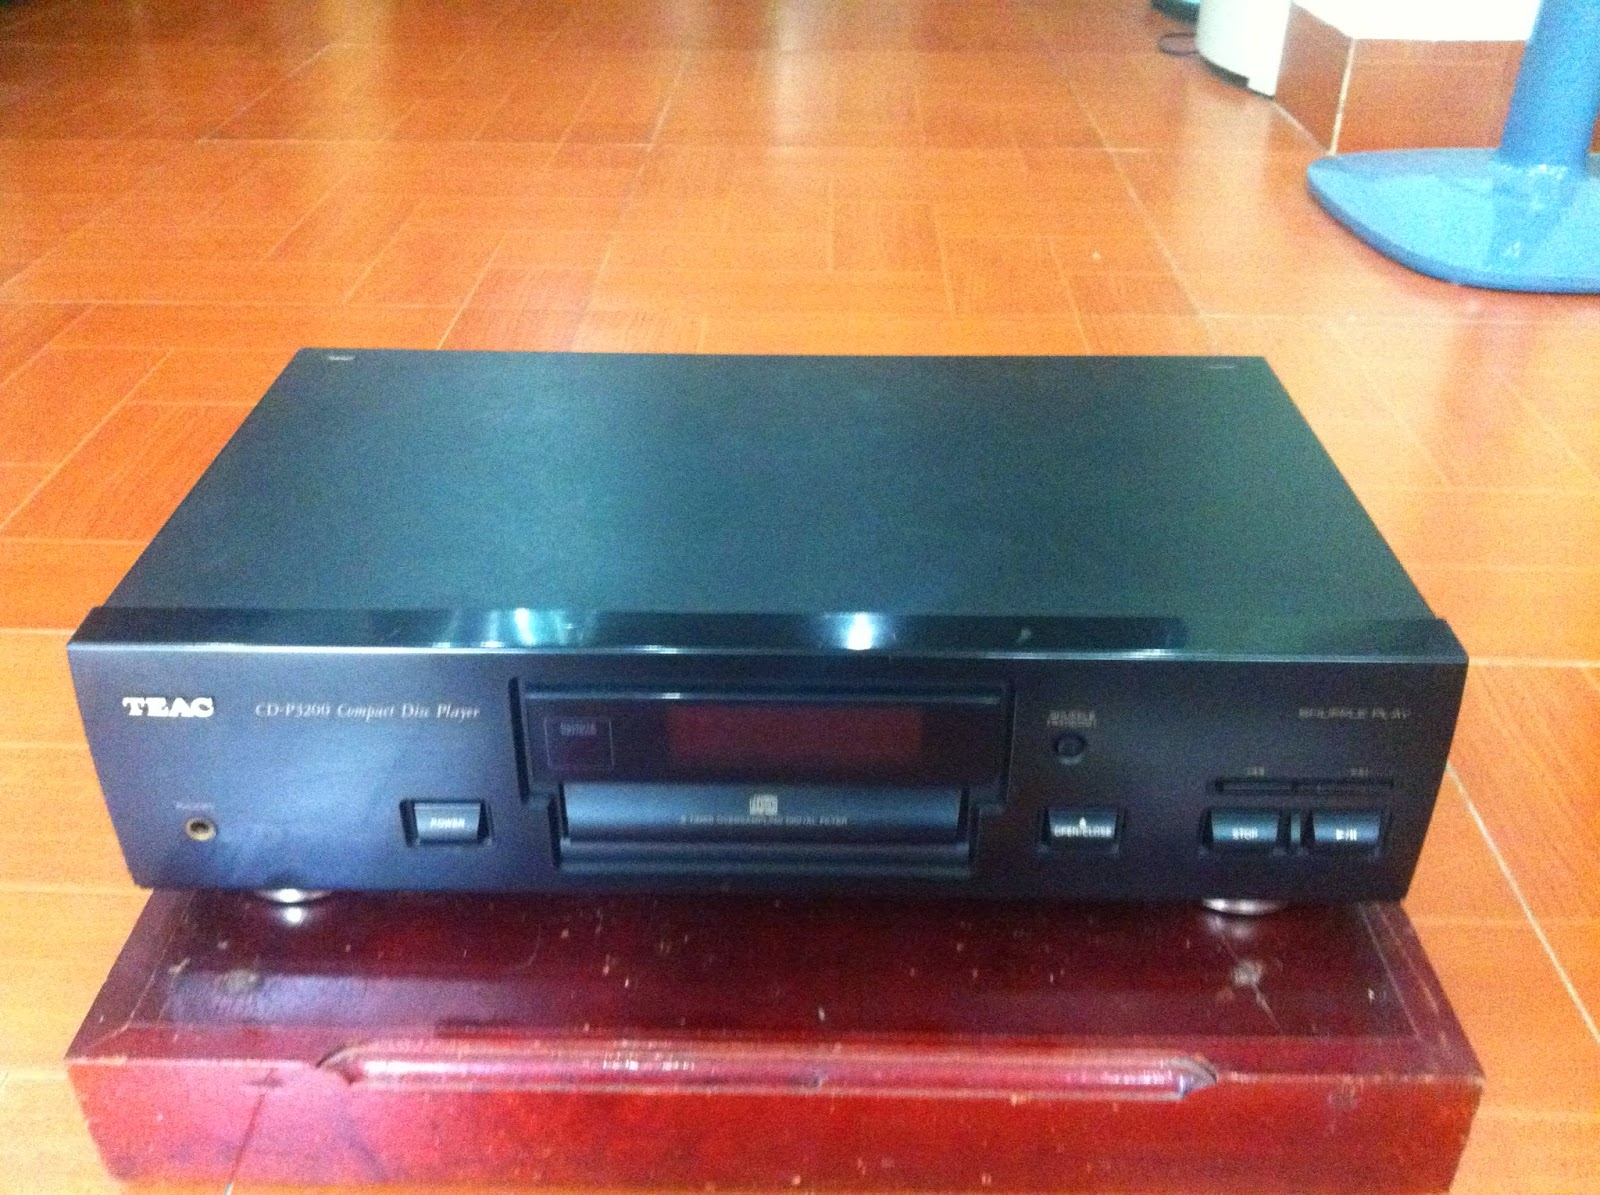 CD Player - TEAC - P3200 - Made in Japan